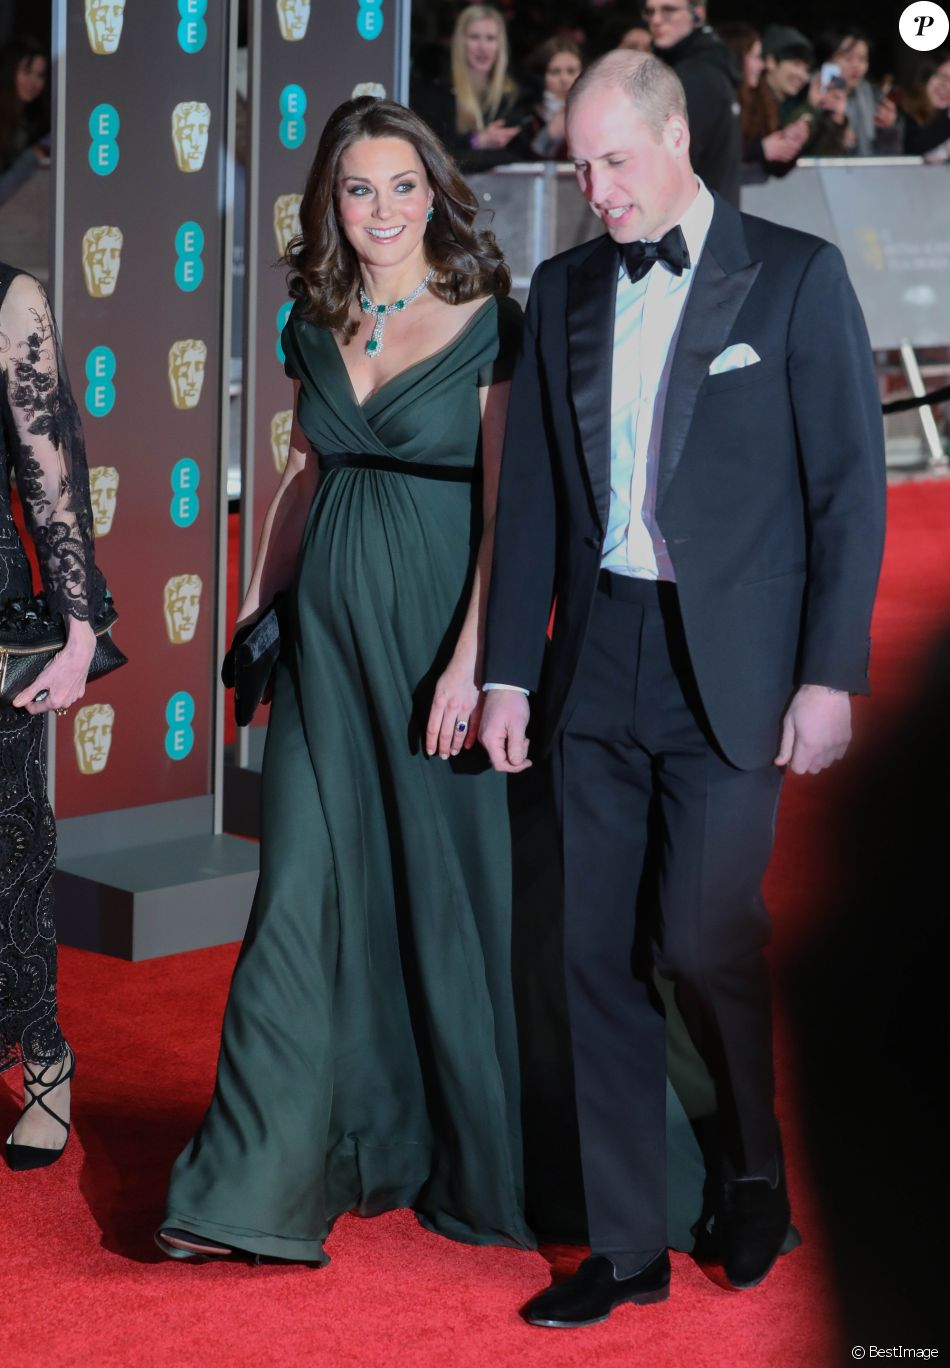 Kate Middleton (enceinte) et le prince William à la 71ème cérémonie des British Academy Film Awards (BAFTA) au Royal Abert Hall à Londres, le 18 février 2018.